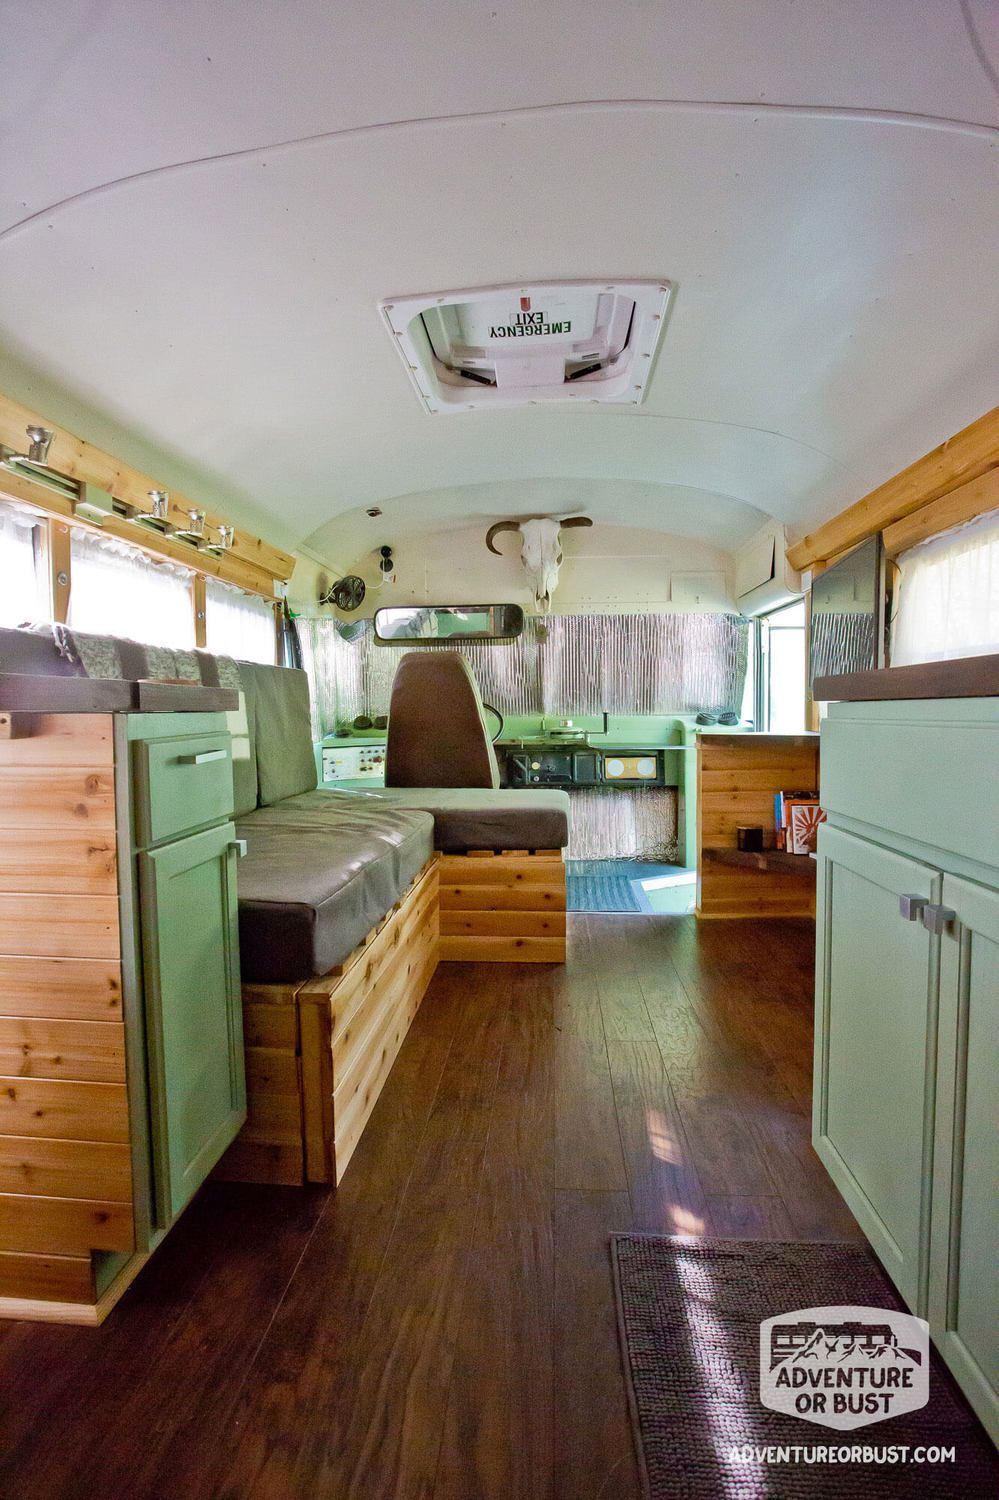 They Chose A Bus Conversion Over Traditional Tiny House Because It Would Cost Less